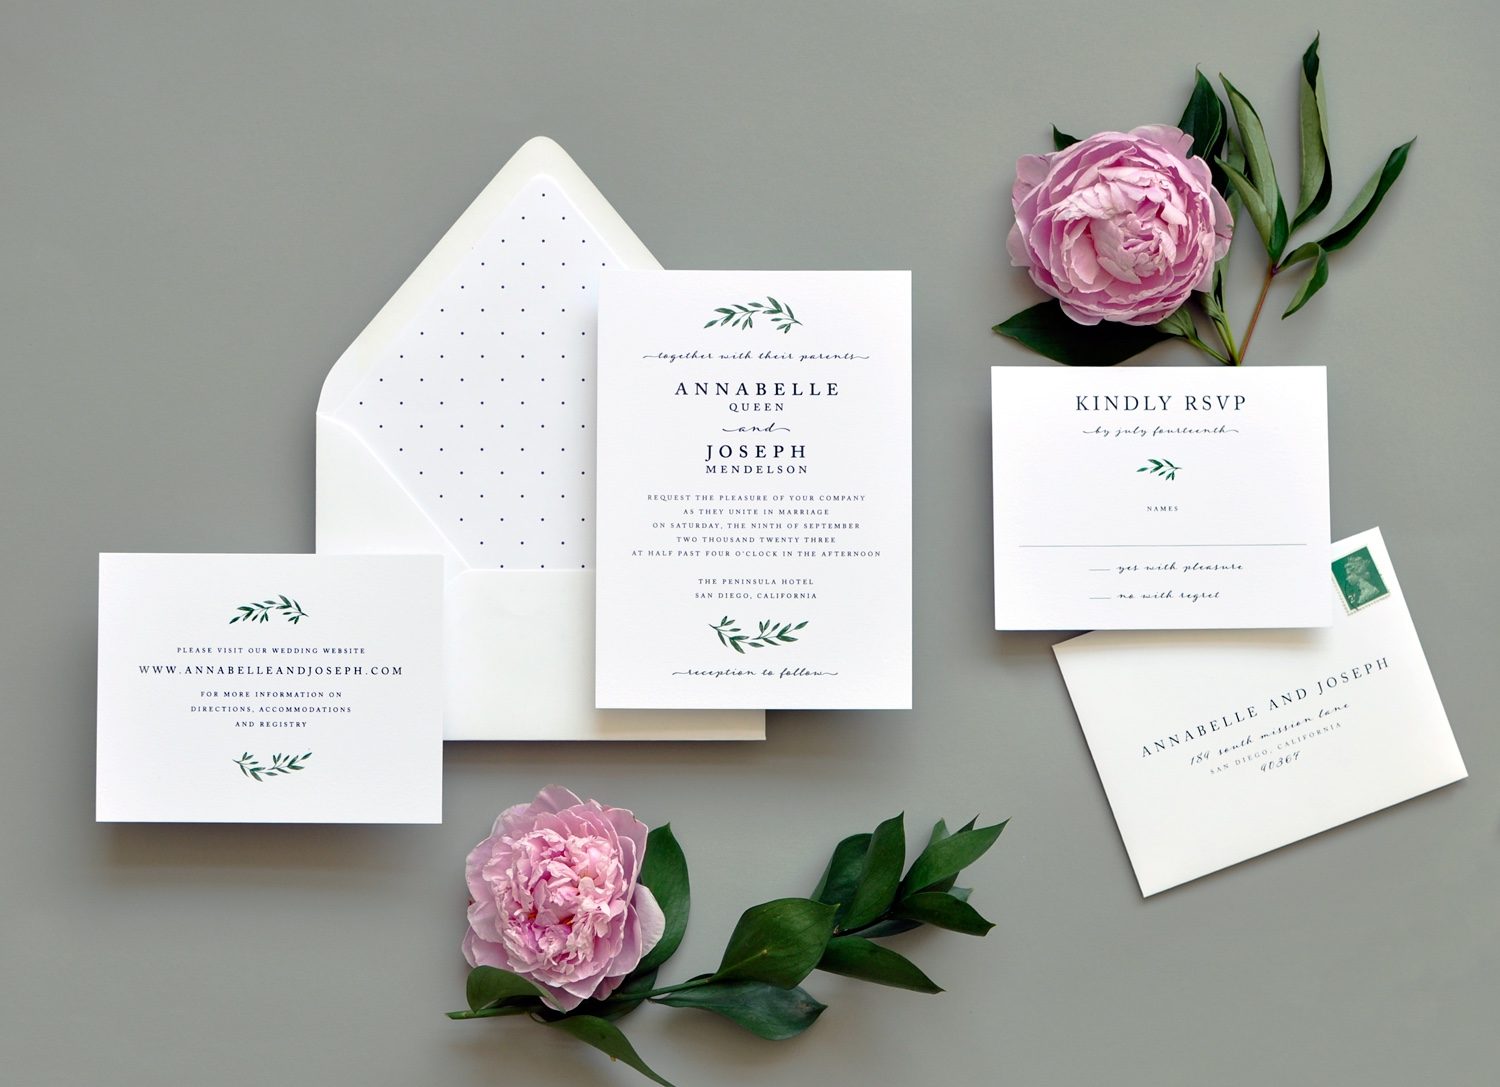 Contemporary text setting is embellished with a spray of greenery and accented with delicate script. A subtle polka dot envelope liner is the perfect pairing.